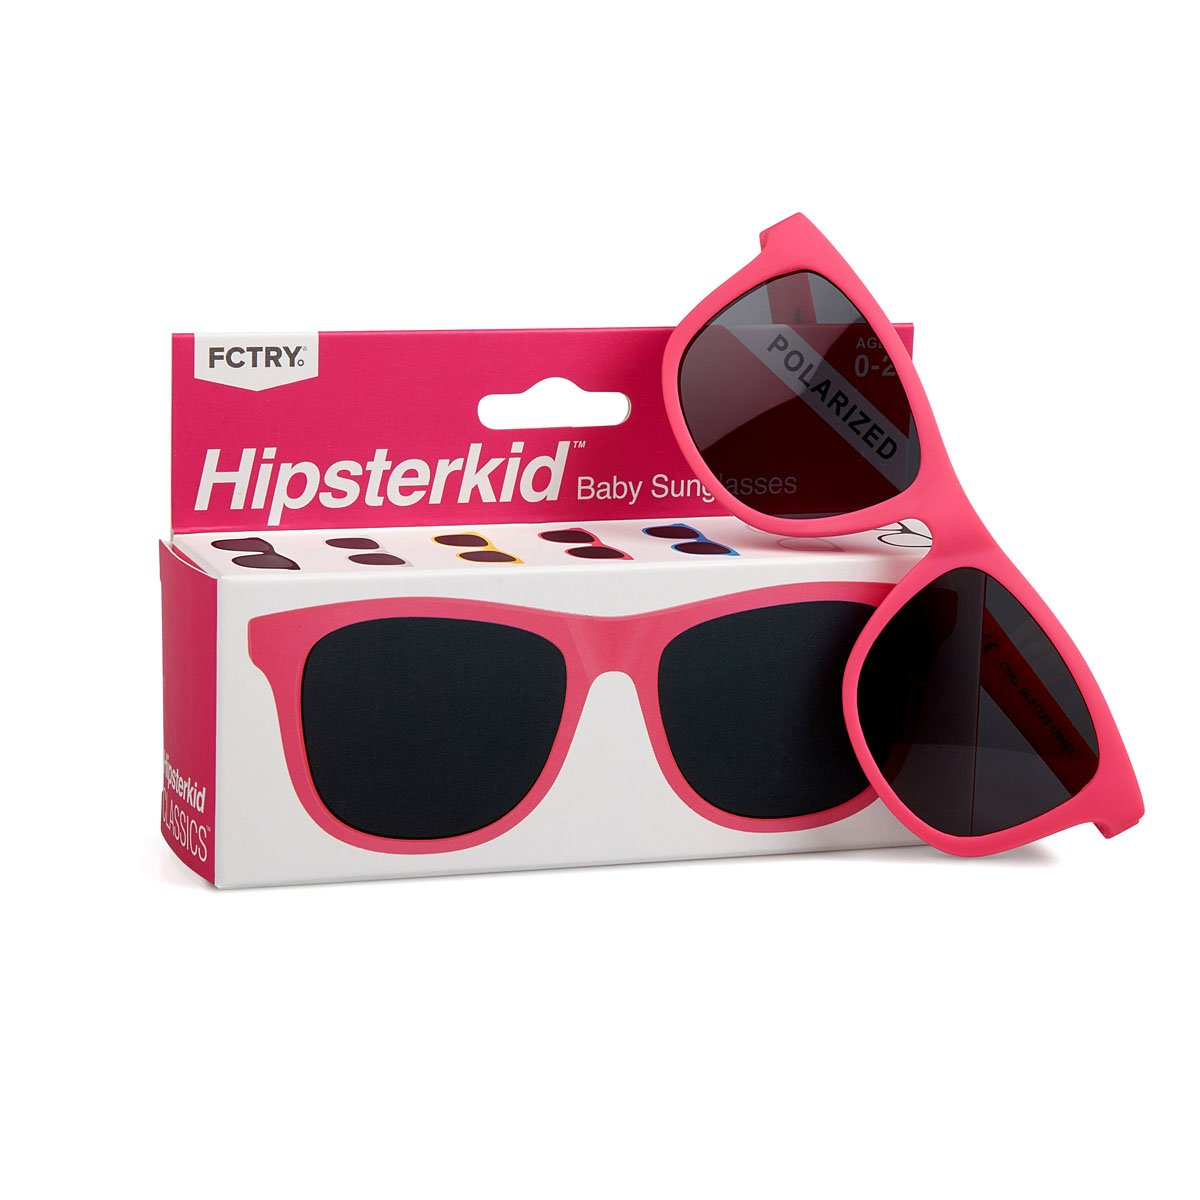 Hipsterkid Classics Baby Sunglasses - Pink (0-2 years)